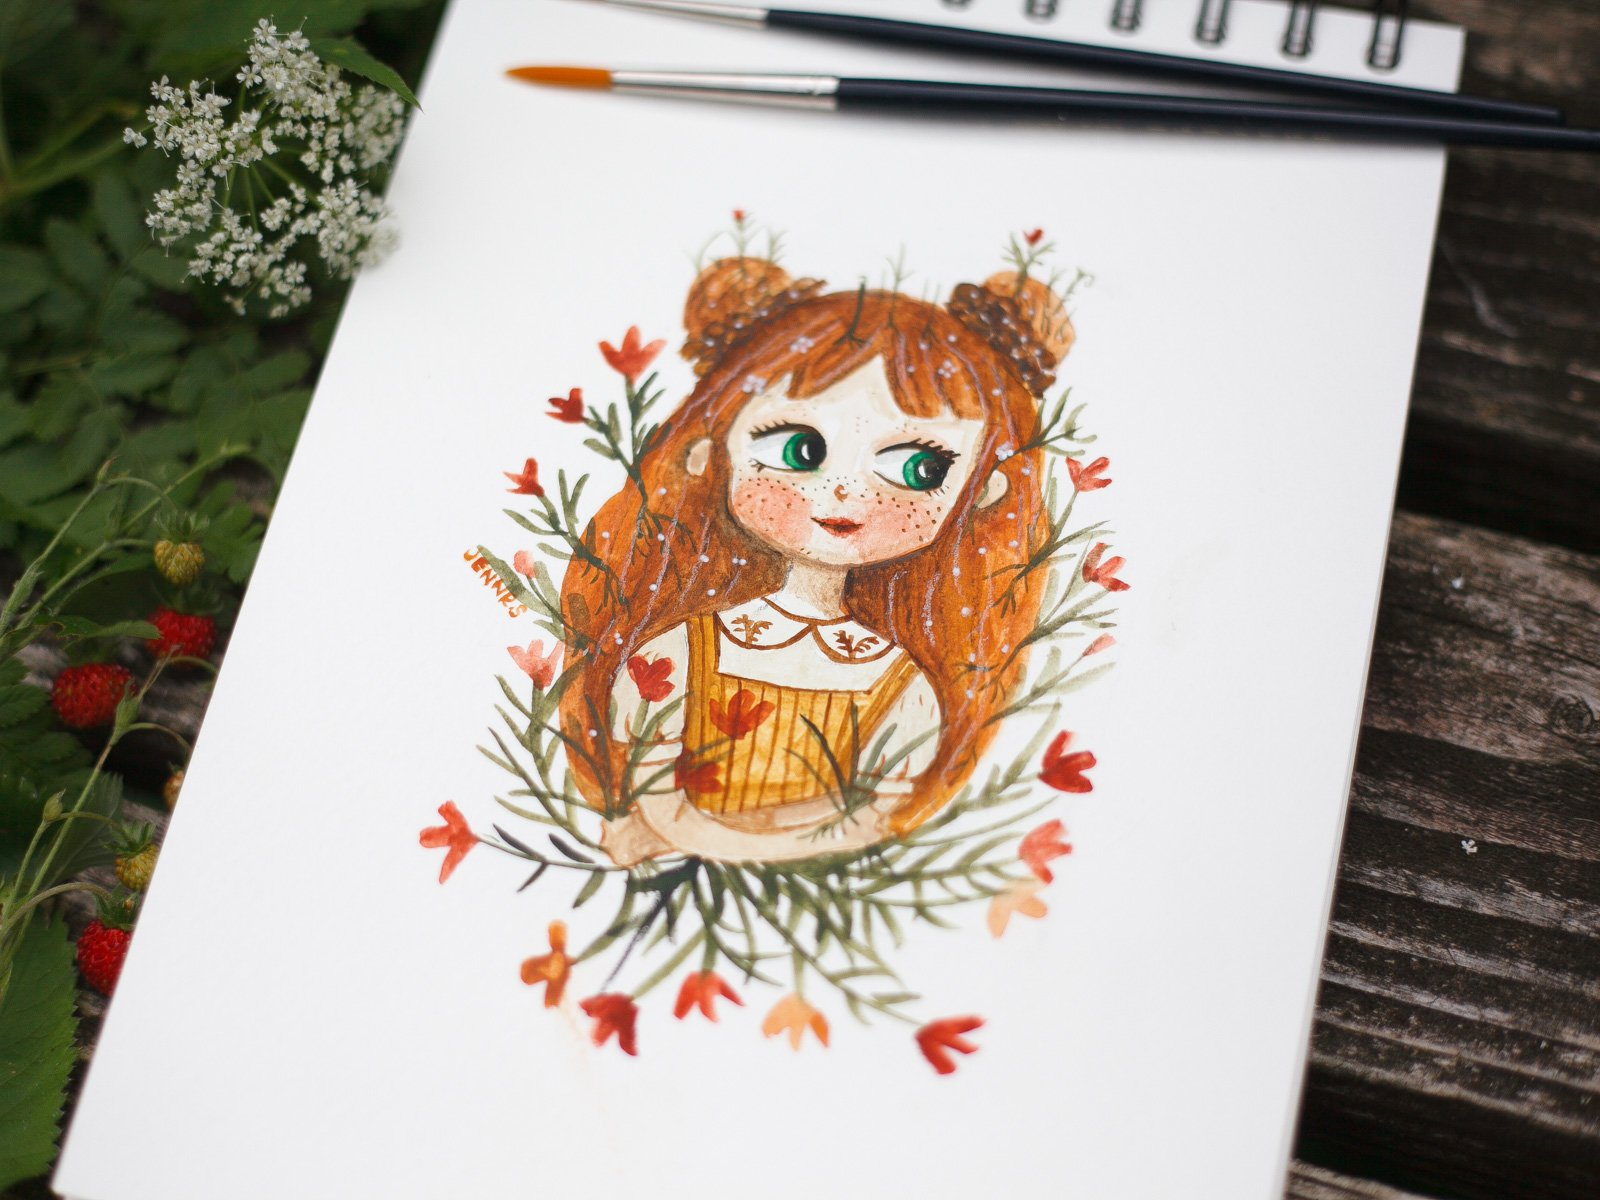 Custom watercolour portrait of a girl with red hair and blue eyes